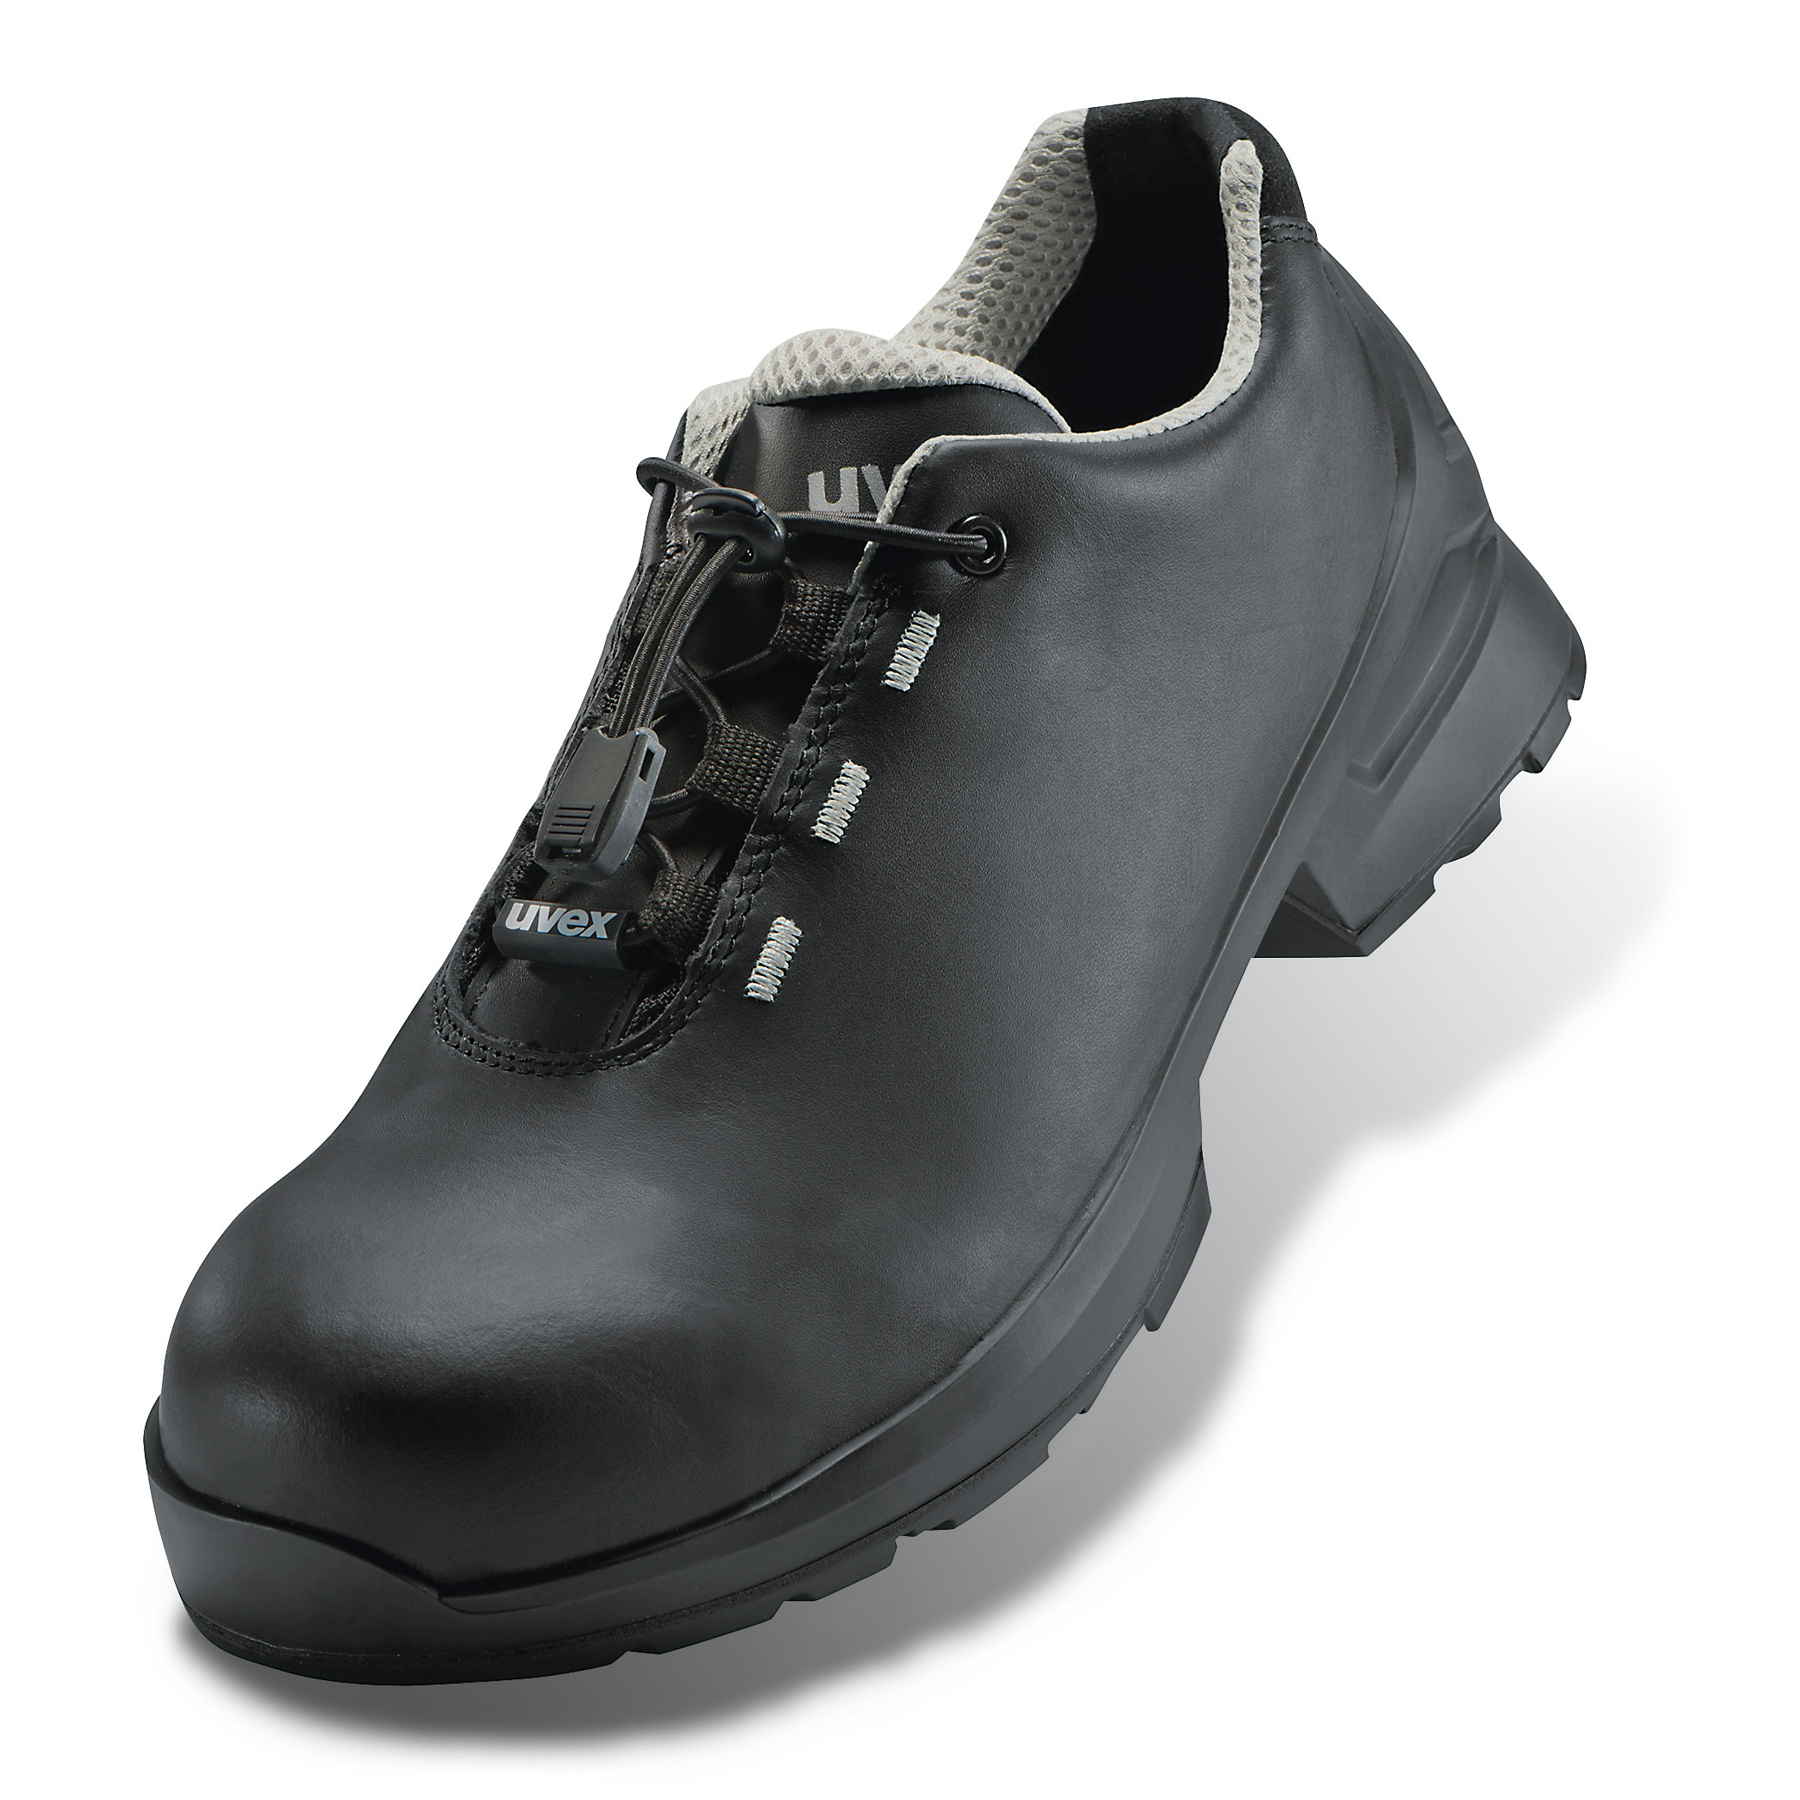 9e1f027b755 Safety Shoes and Safety Boots | uvex Safety Footwear